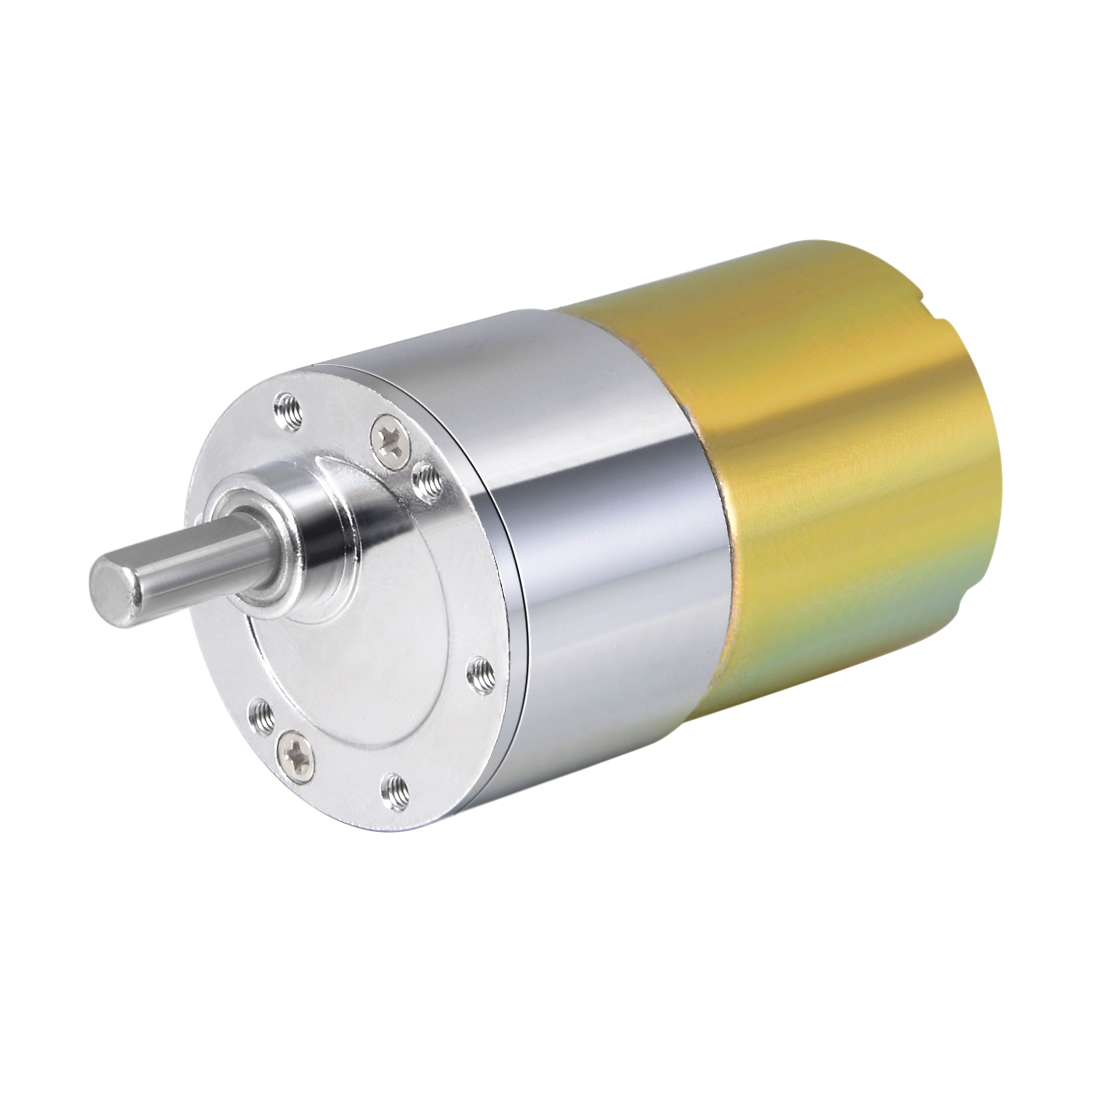 DC 24V 300RPM Gear Motor Reduction Gearbox Centric Output Shaft